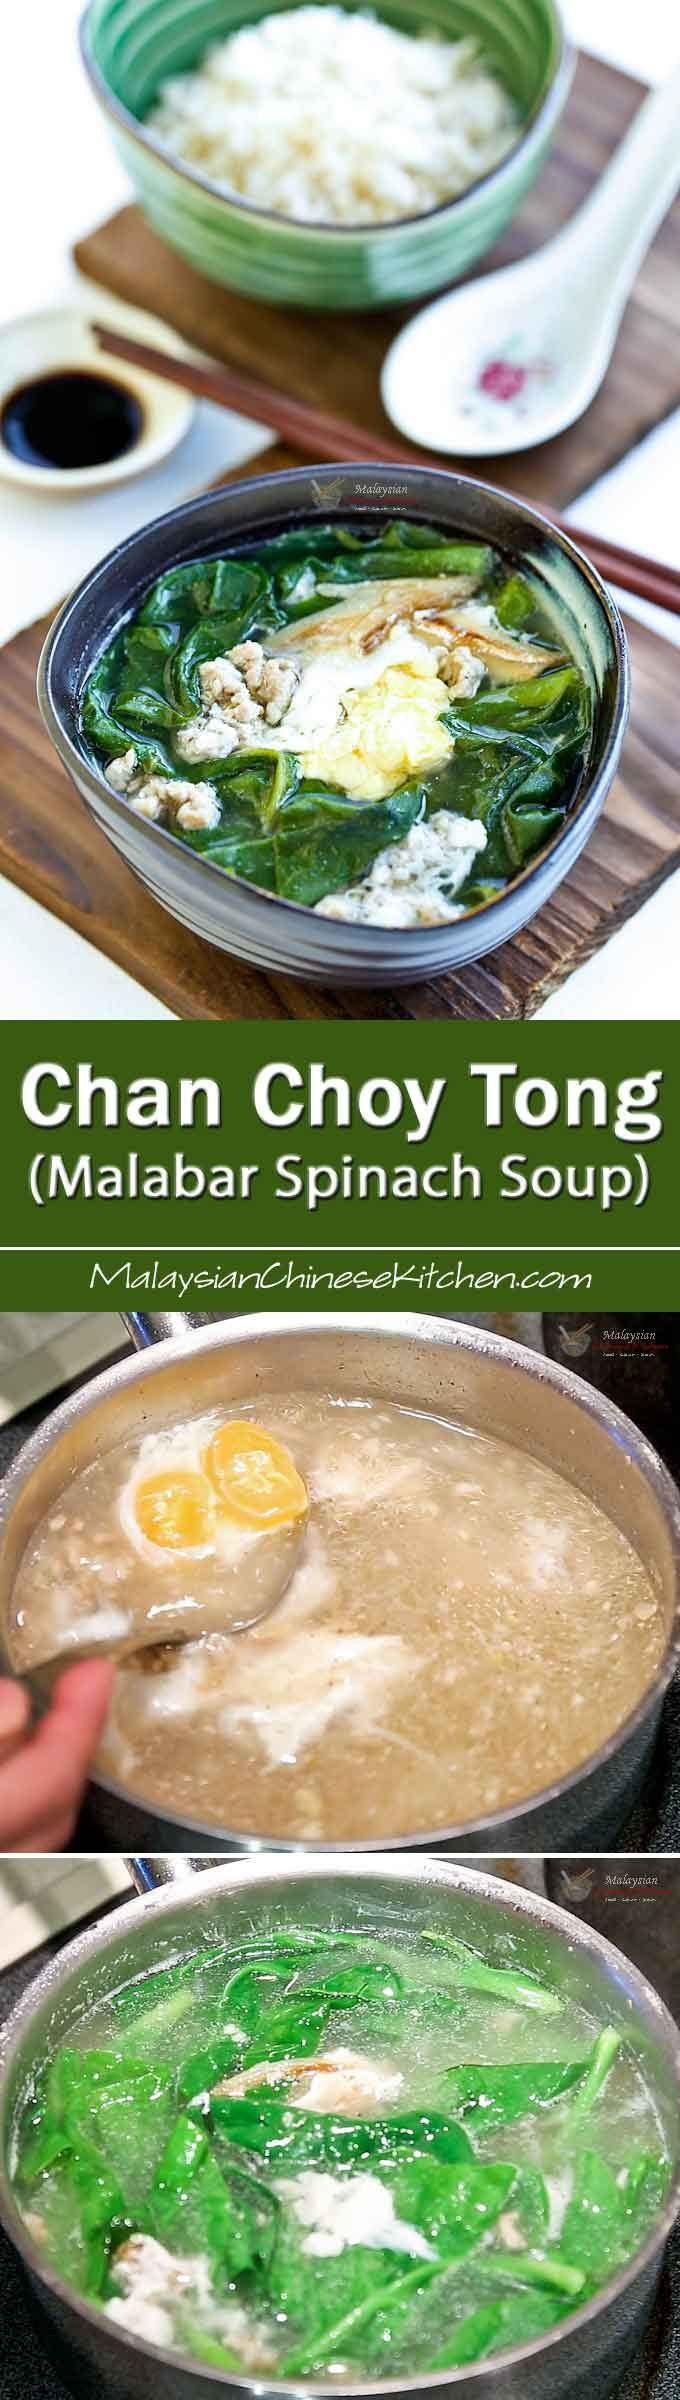 Delicious and nutritious quick boil Chan Choy Tong (Malabar Spinach Soup) with salted duck egg for an additional layer of flavor. Perfect for busy weeknights. | MalaysianChineseKitchen.com